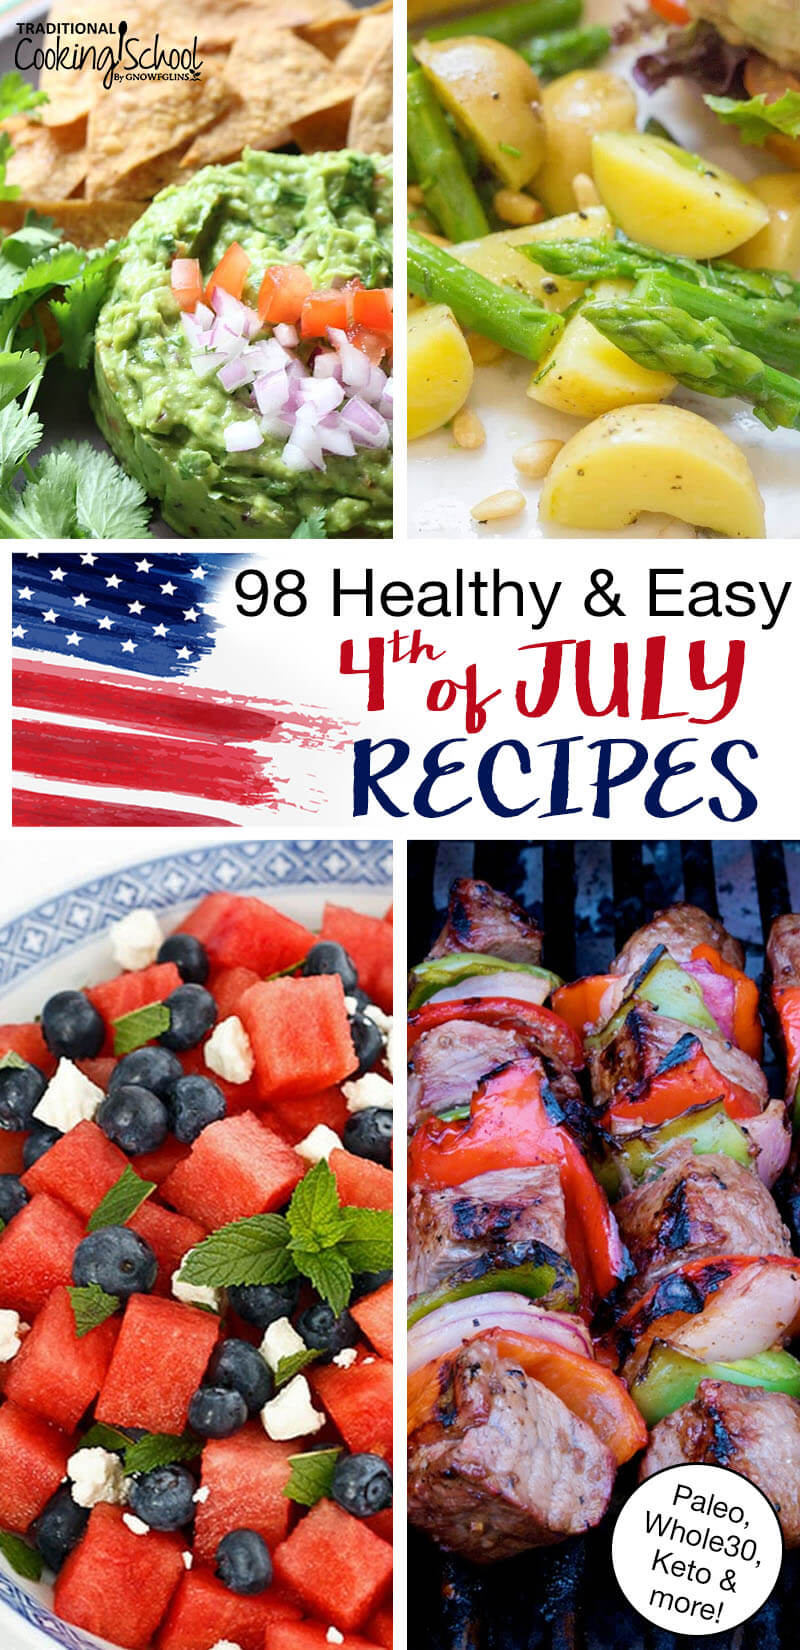 """photo collage of patriotic food, including a cheesecake decorated with berries in the shape of a flag, shish kabobs, fruit salad, and more; with text overlay: """"98 Healthy & Easy 4th of July Recipes (Paleo, Whole30, Keto & more!)"""""""